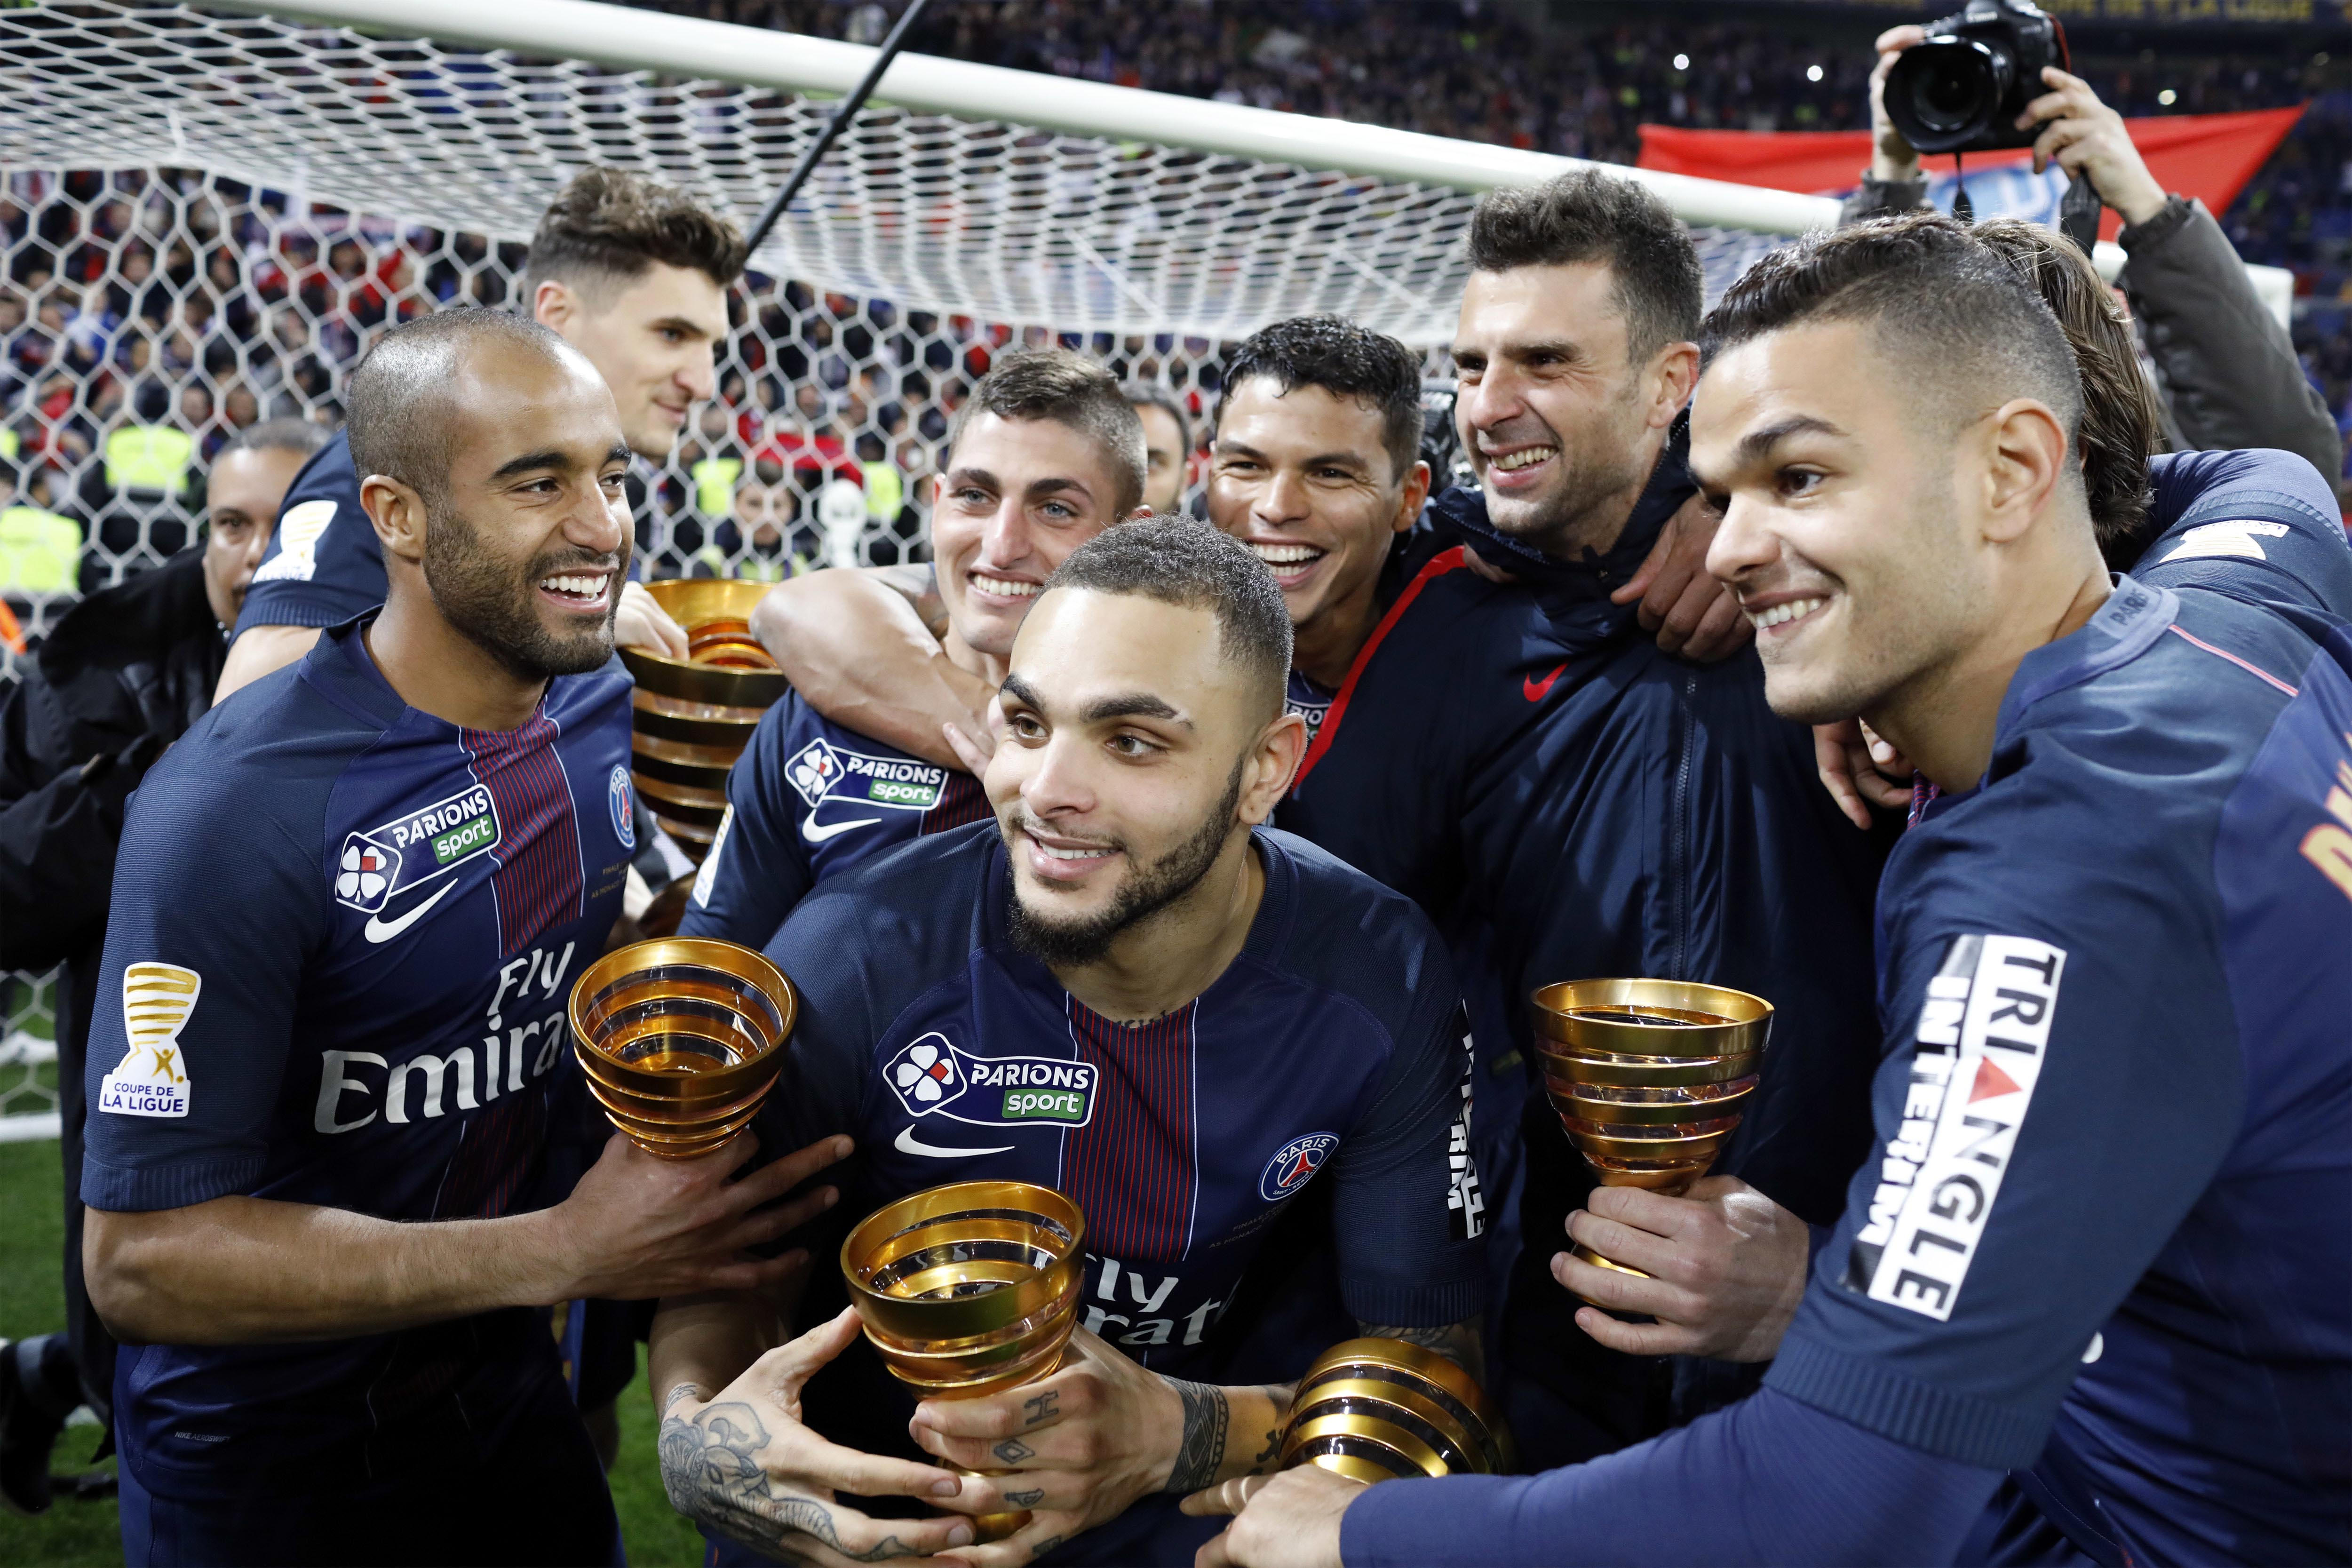 Paris Saint Germain's Layvin Kurzawa, center, celebrates with his teammates after winning the League Cup final soccer match against Monaco, in Decines, near Lyon, central France, on Saturday, April 1, 2017. Photo: AP